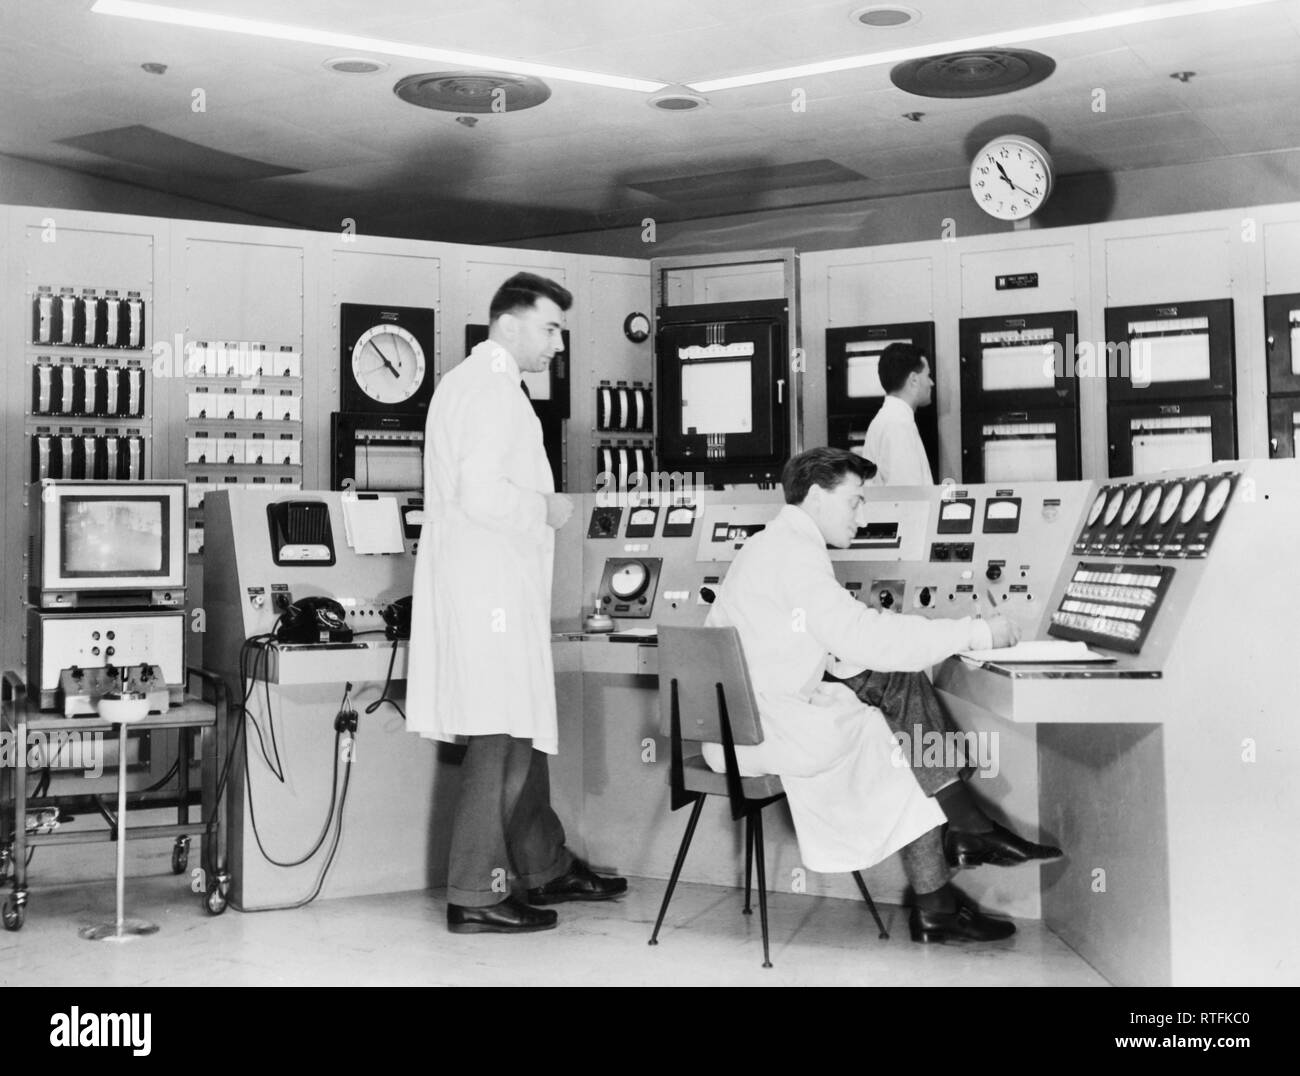 Nuclear techniques in the control room, 1959 Stock Photo